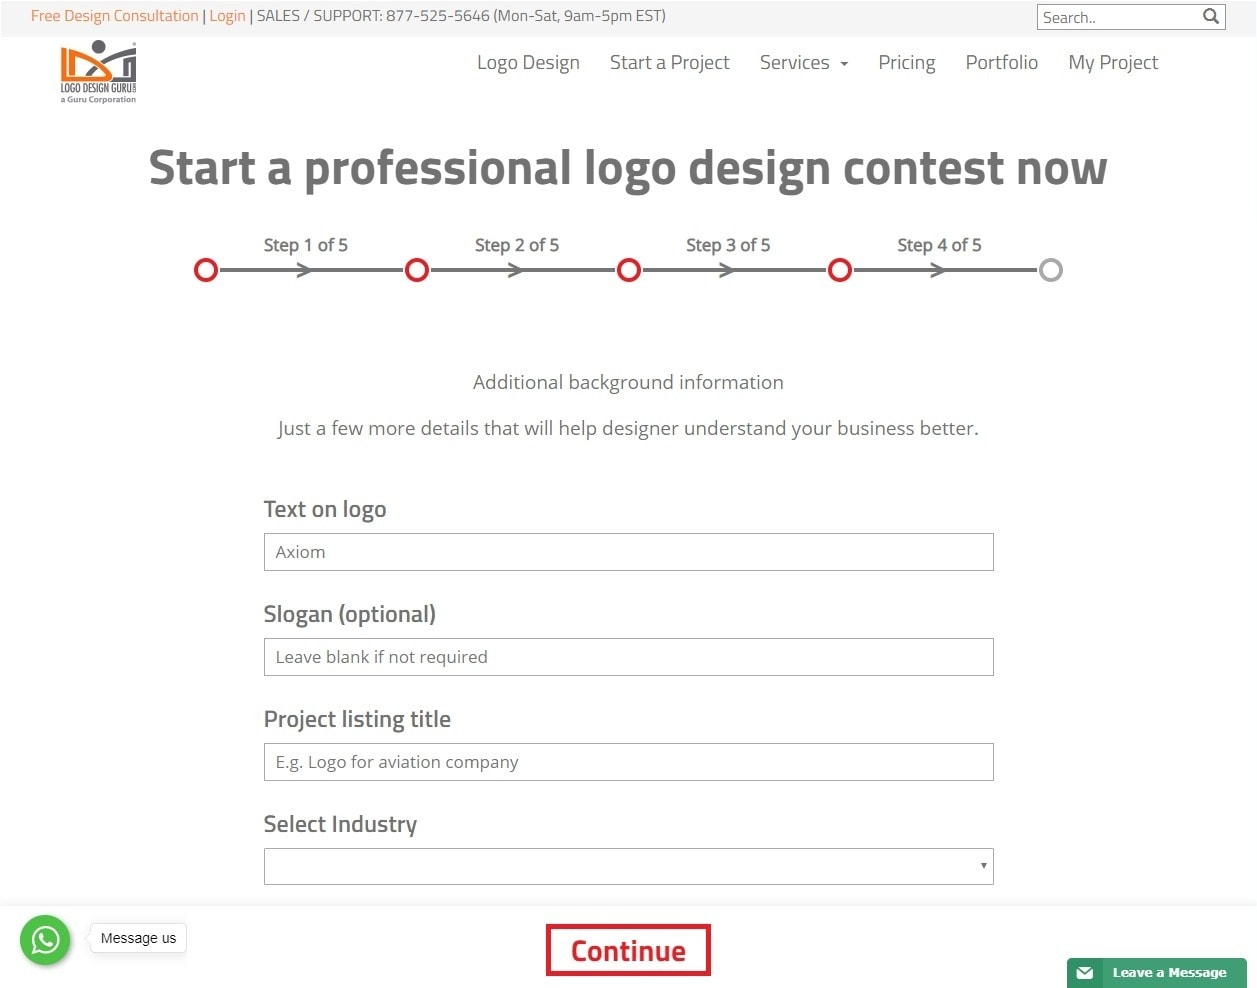 Logo Design Guru screenshot - logo details